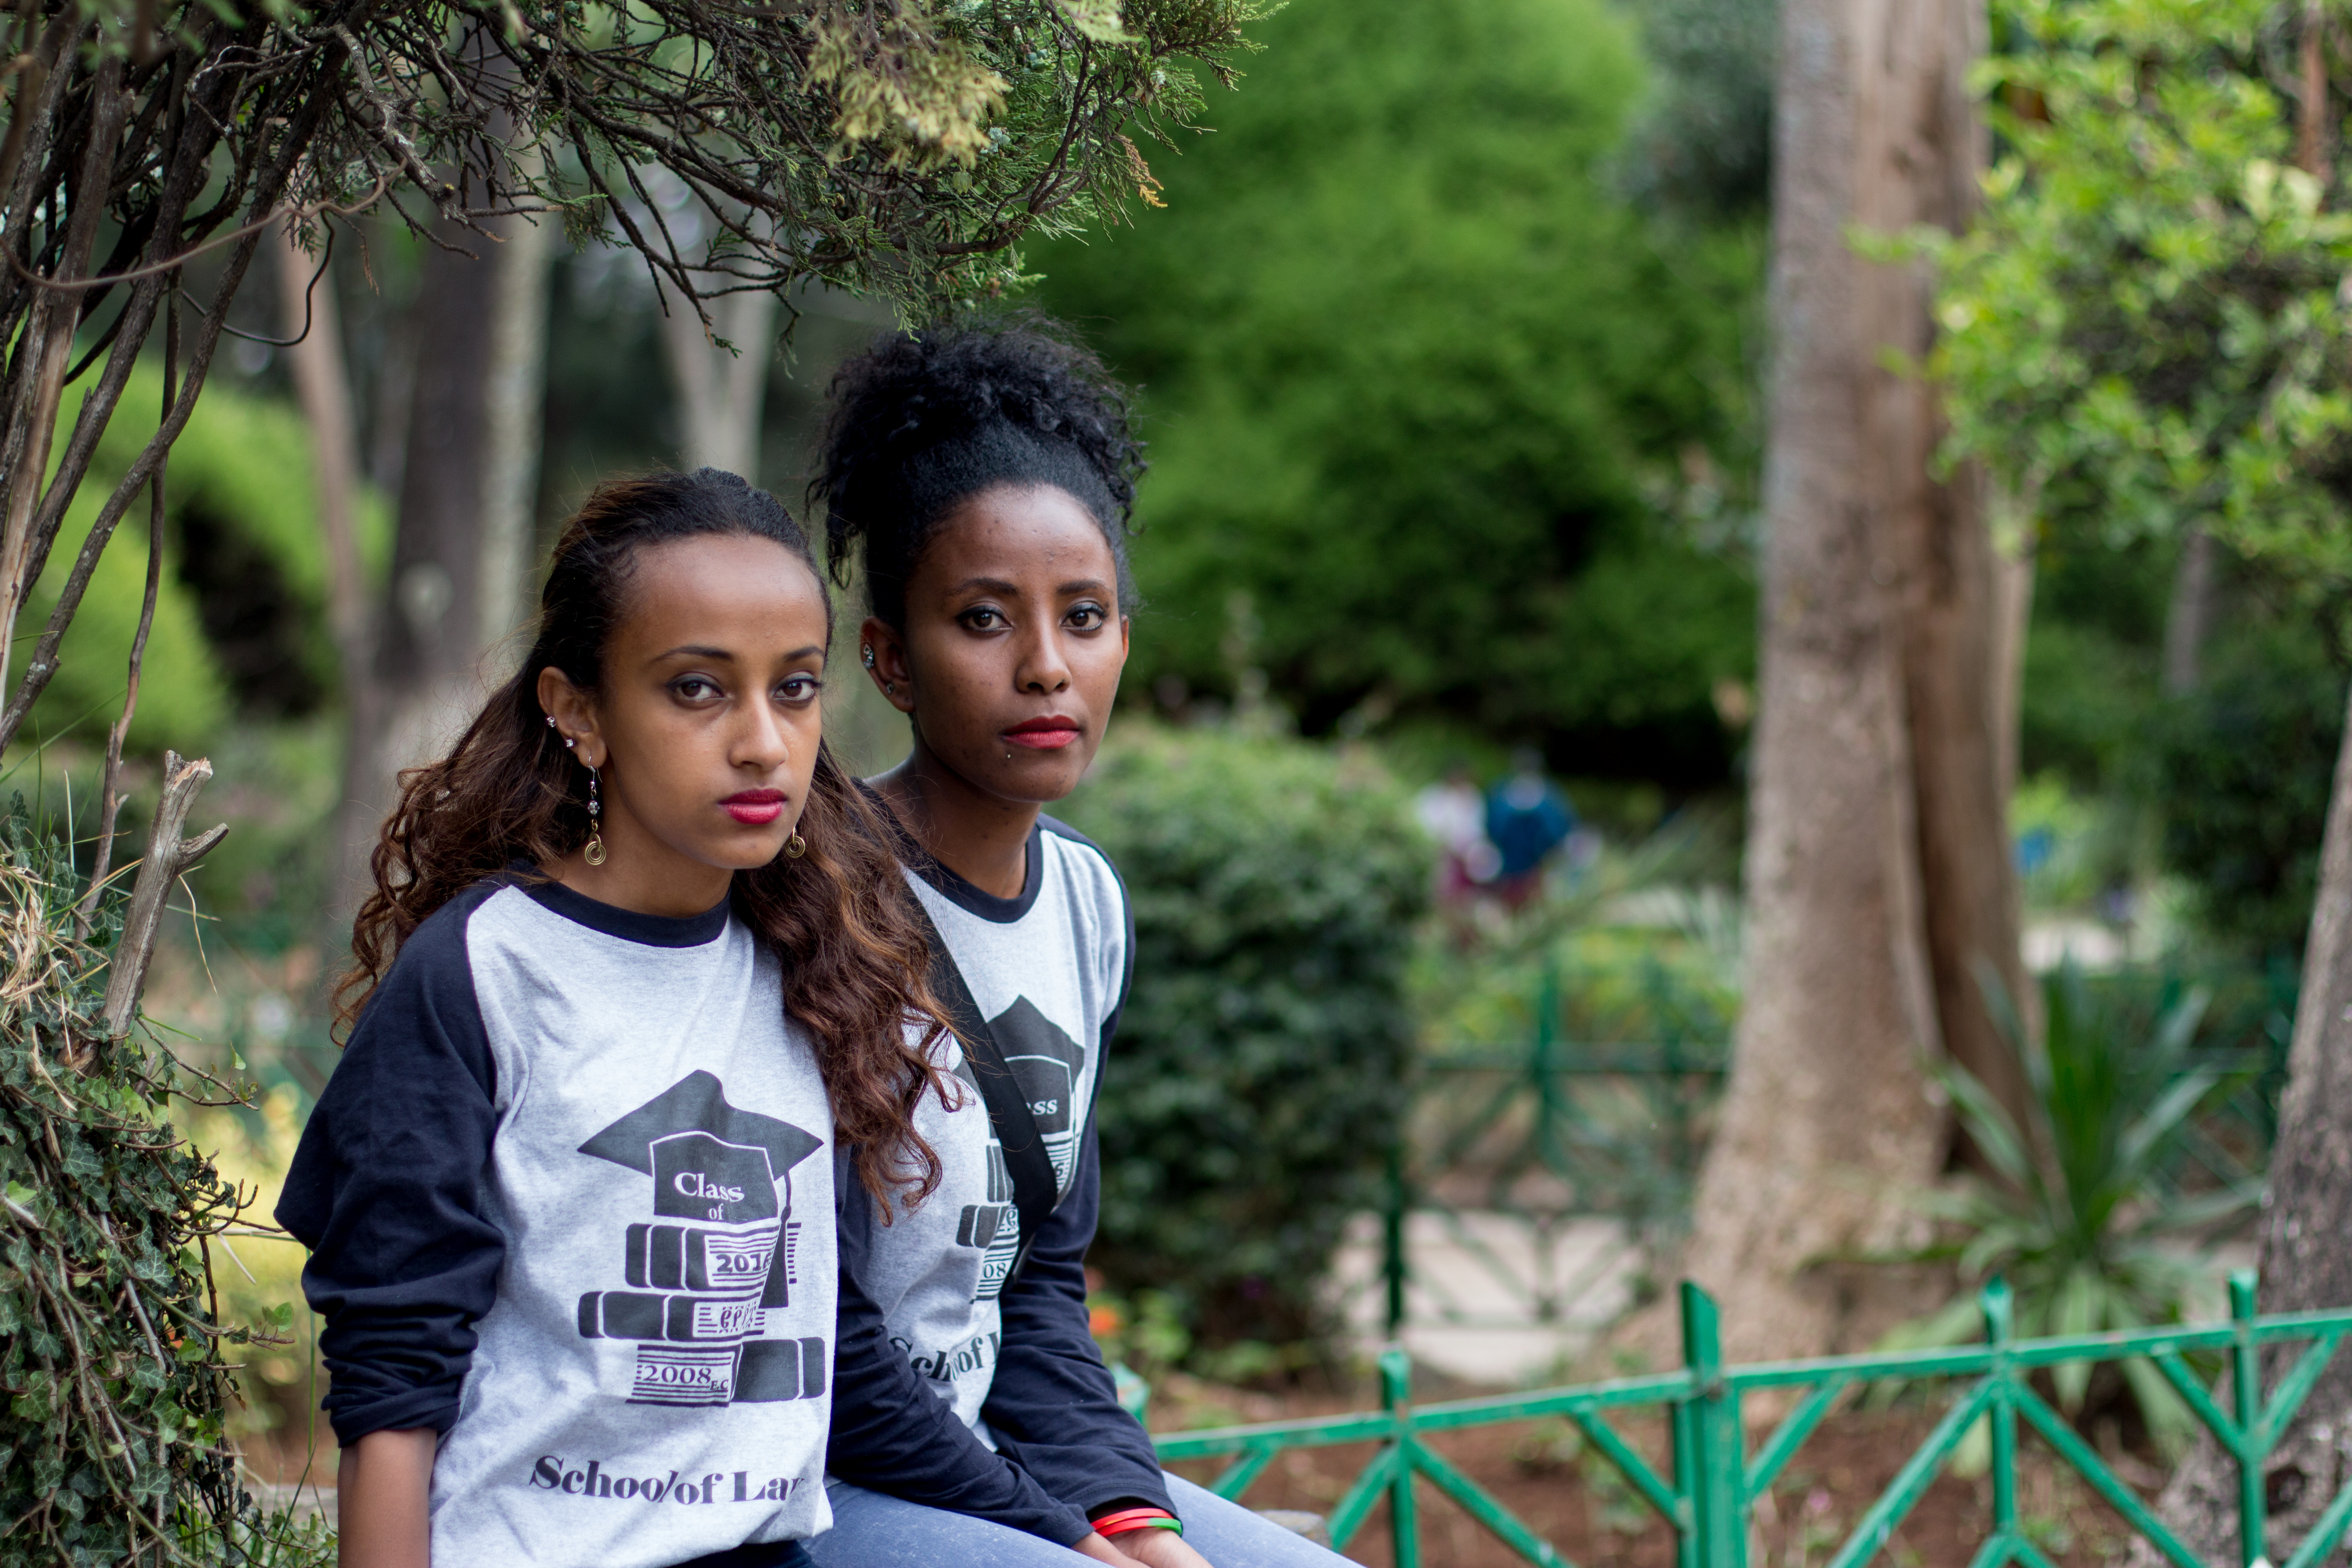 An Ethiopian 'Humans of New York' approach to document